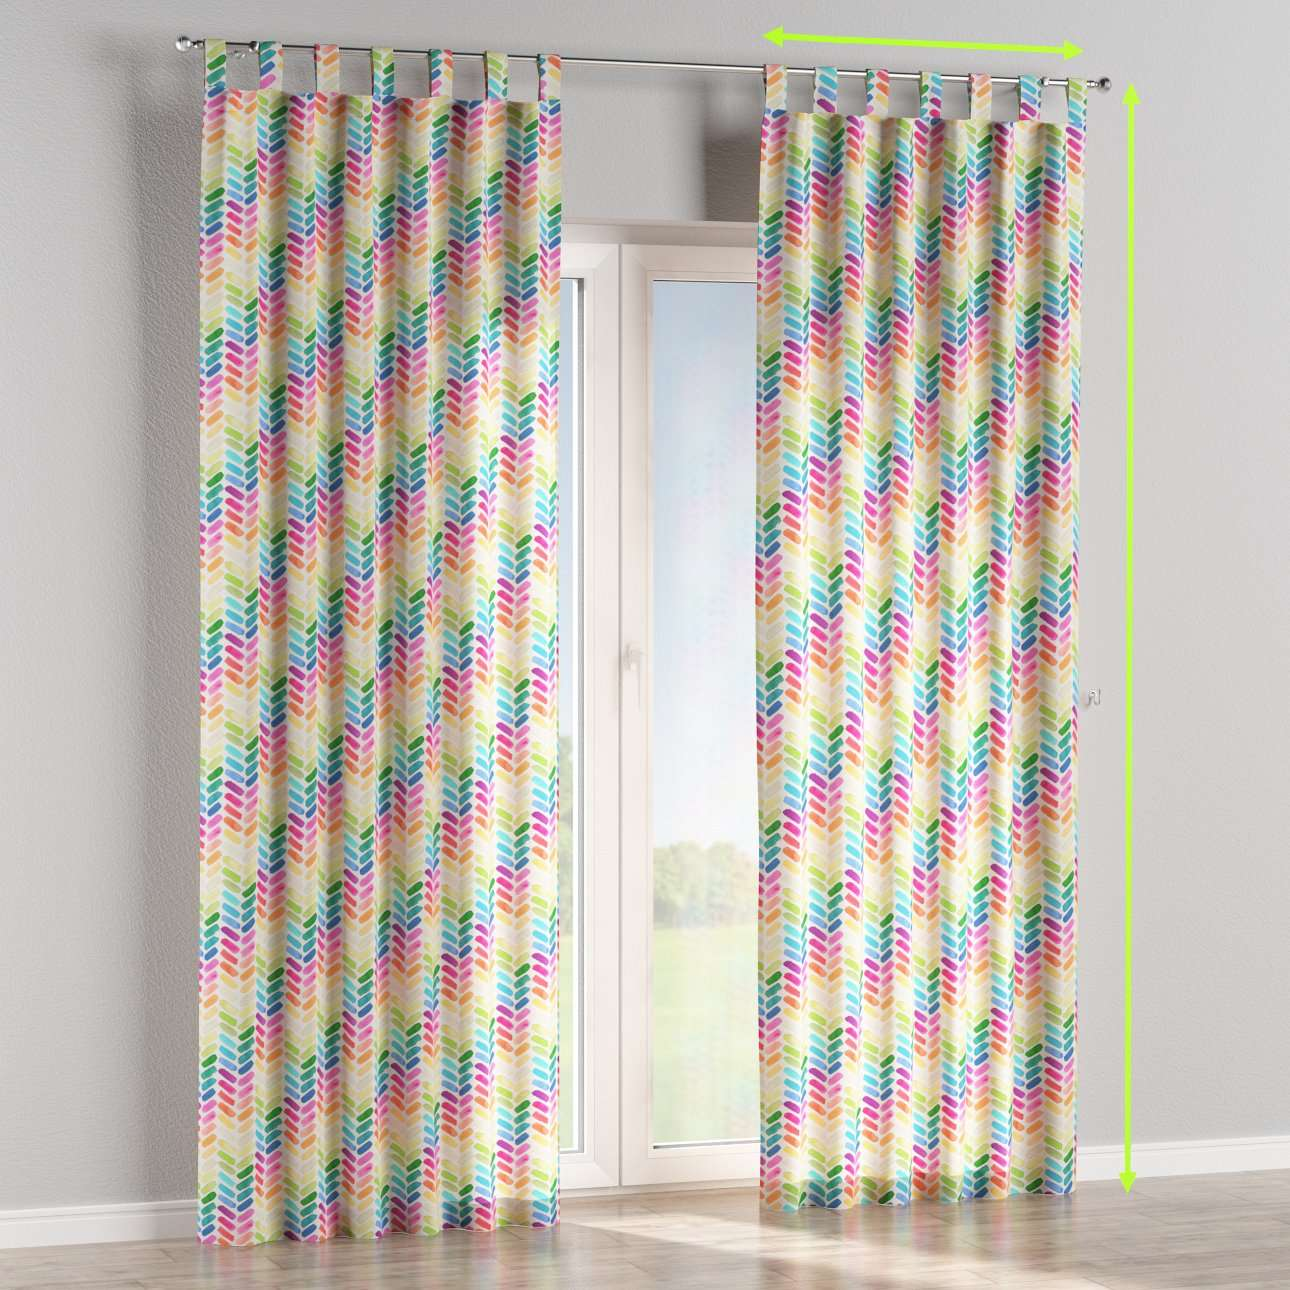 Tab top curtains in collection New Art, fabric: 140-25